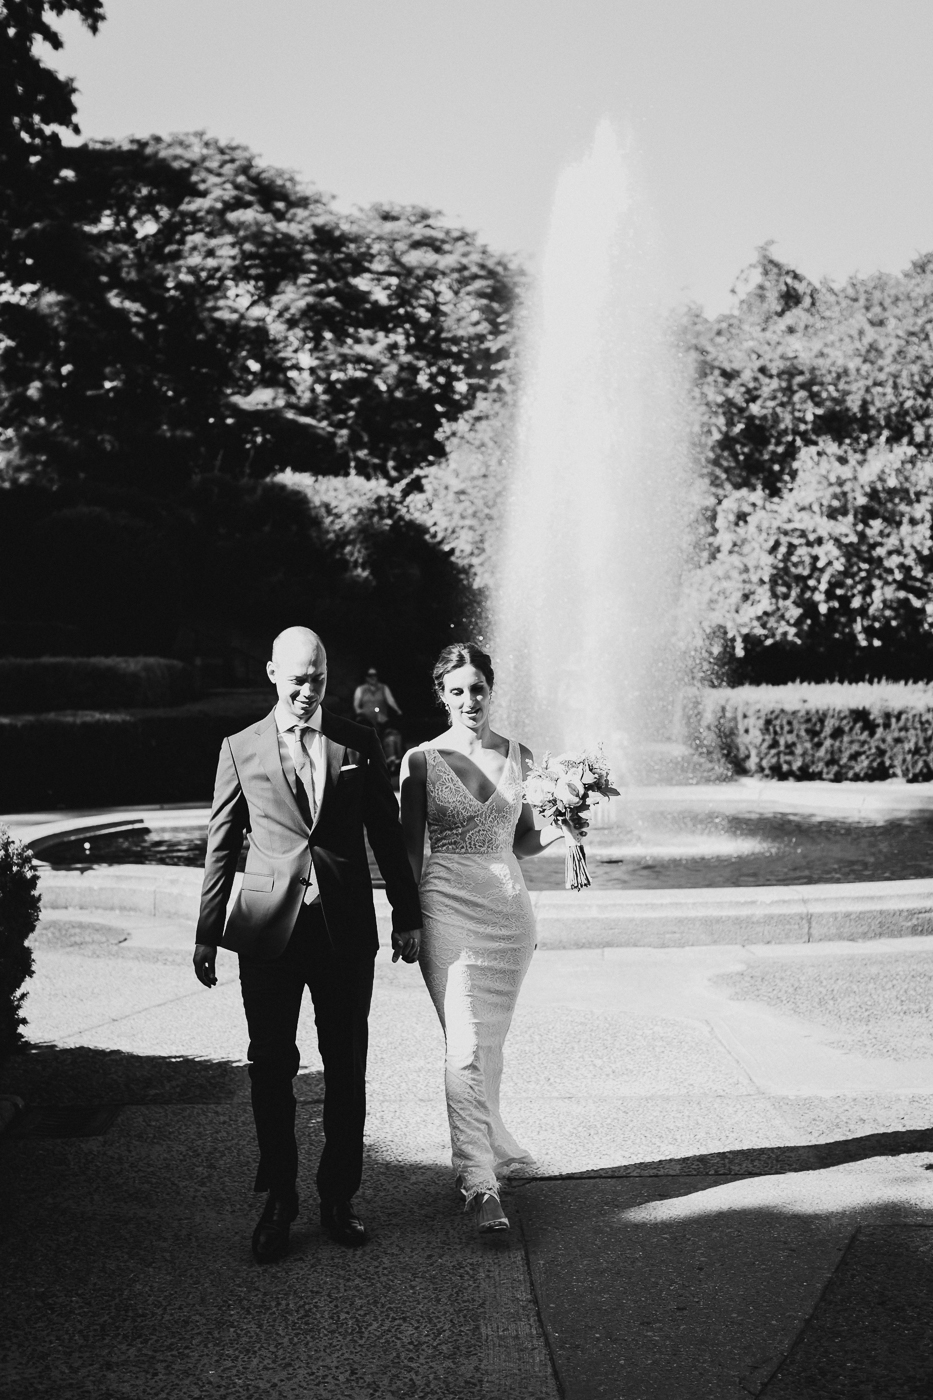 NYC-Central-Park-Conservatory-Garden-Intimate-Elopement-Documentary-Wedding-Photographer-37.jpg